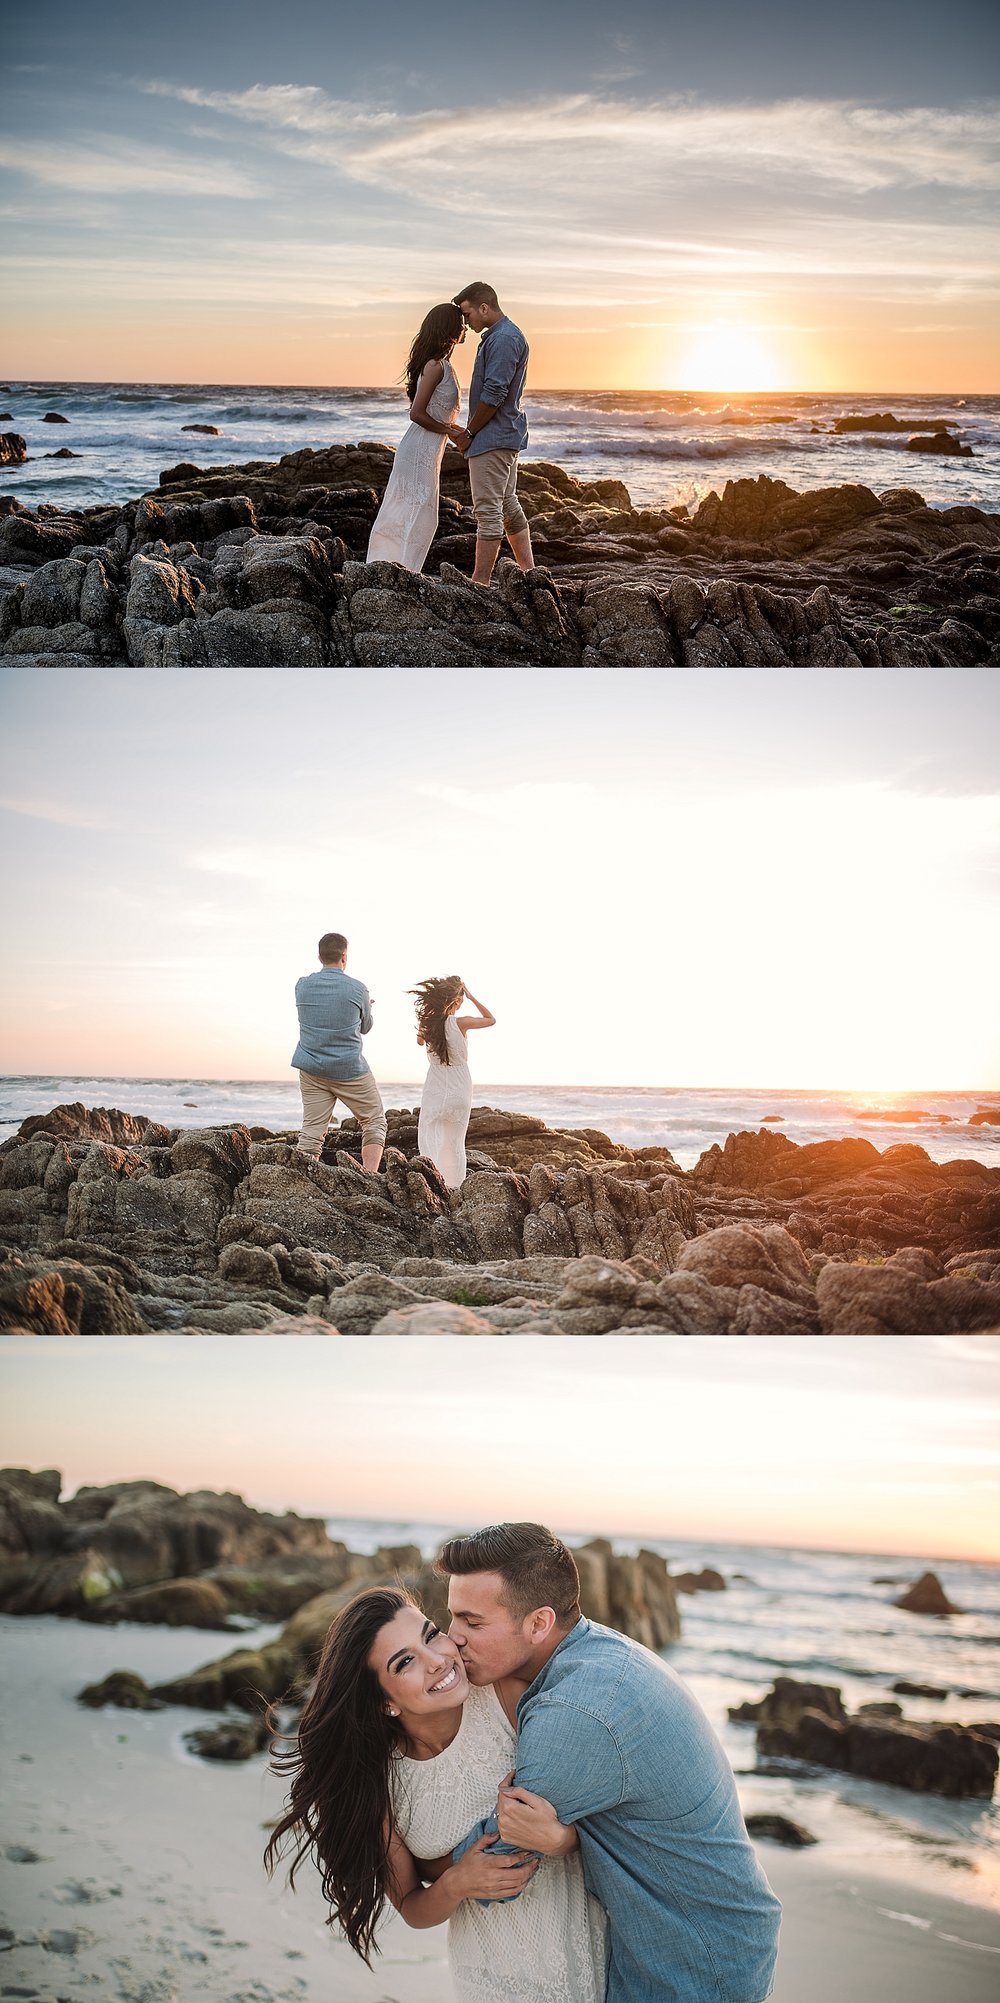 Montery_Carmel_by_the_Sea_Engagement8.jpg